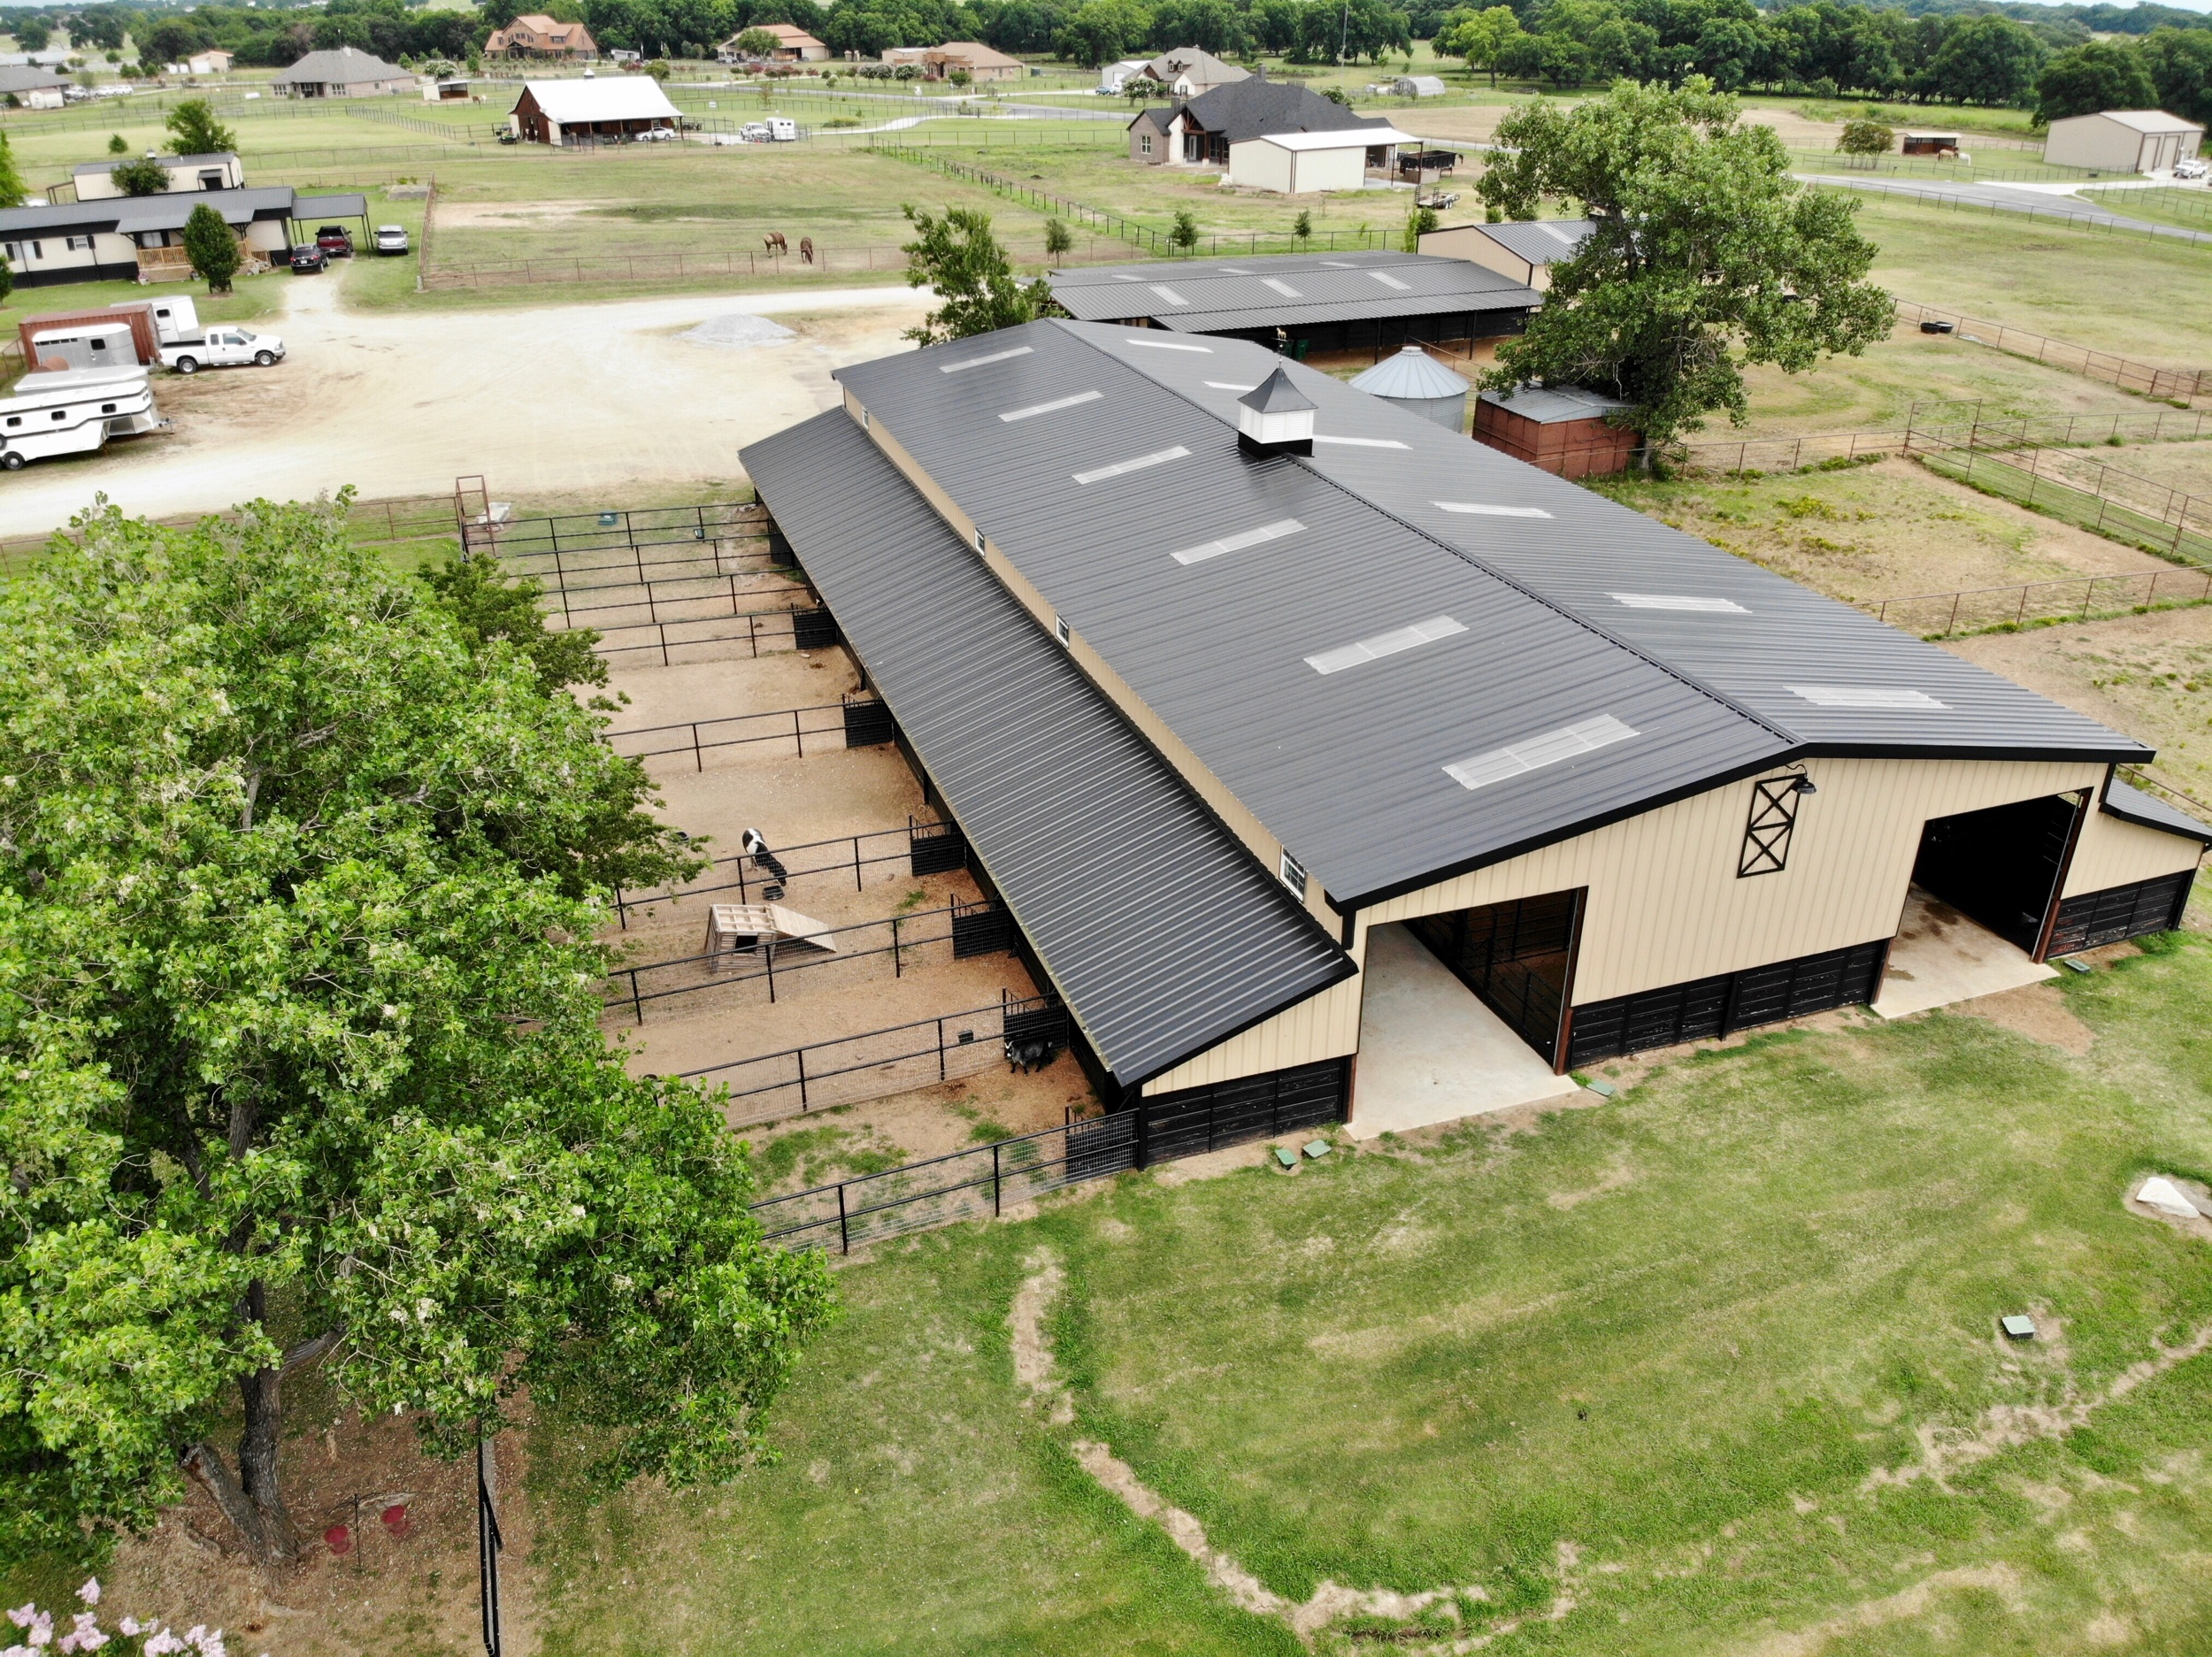 MarE Motel - The Mare Motel is the our largest barn, located at the center of the ranch. It has recently been renovated and is one of our most beautiful boarding barns. With a lunging arena, wash racks and tack room all located internally, the weather will never slow you down.